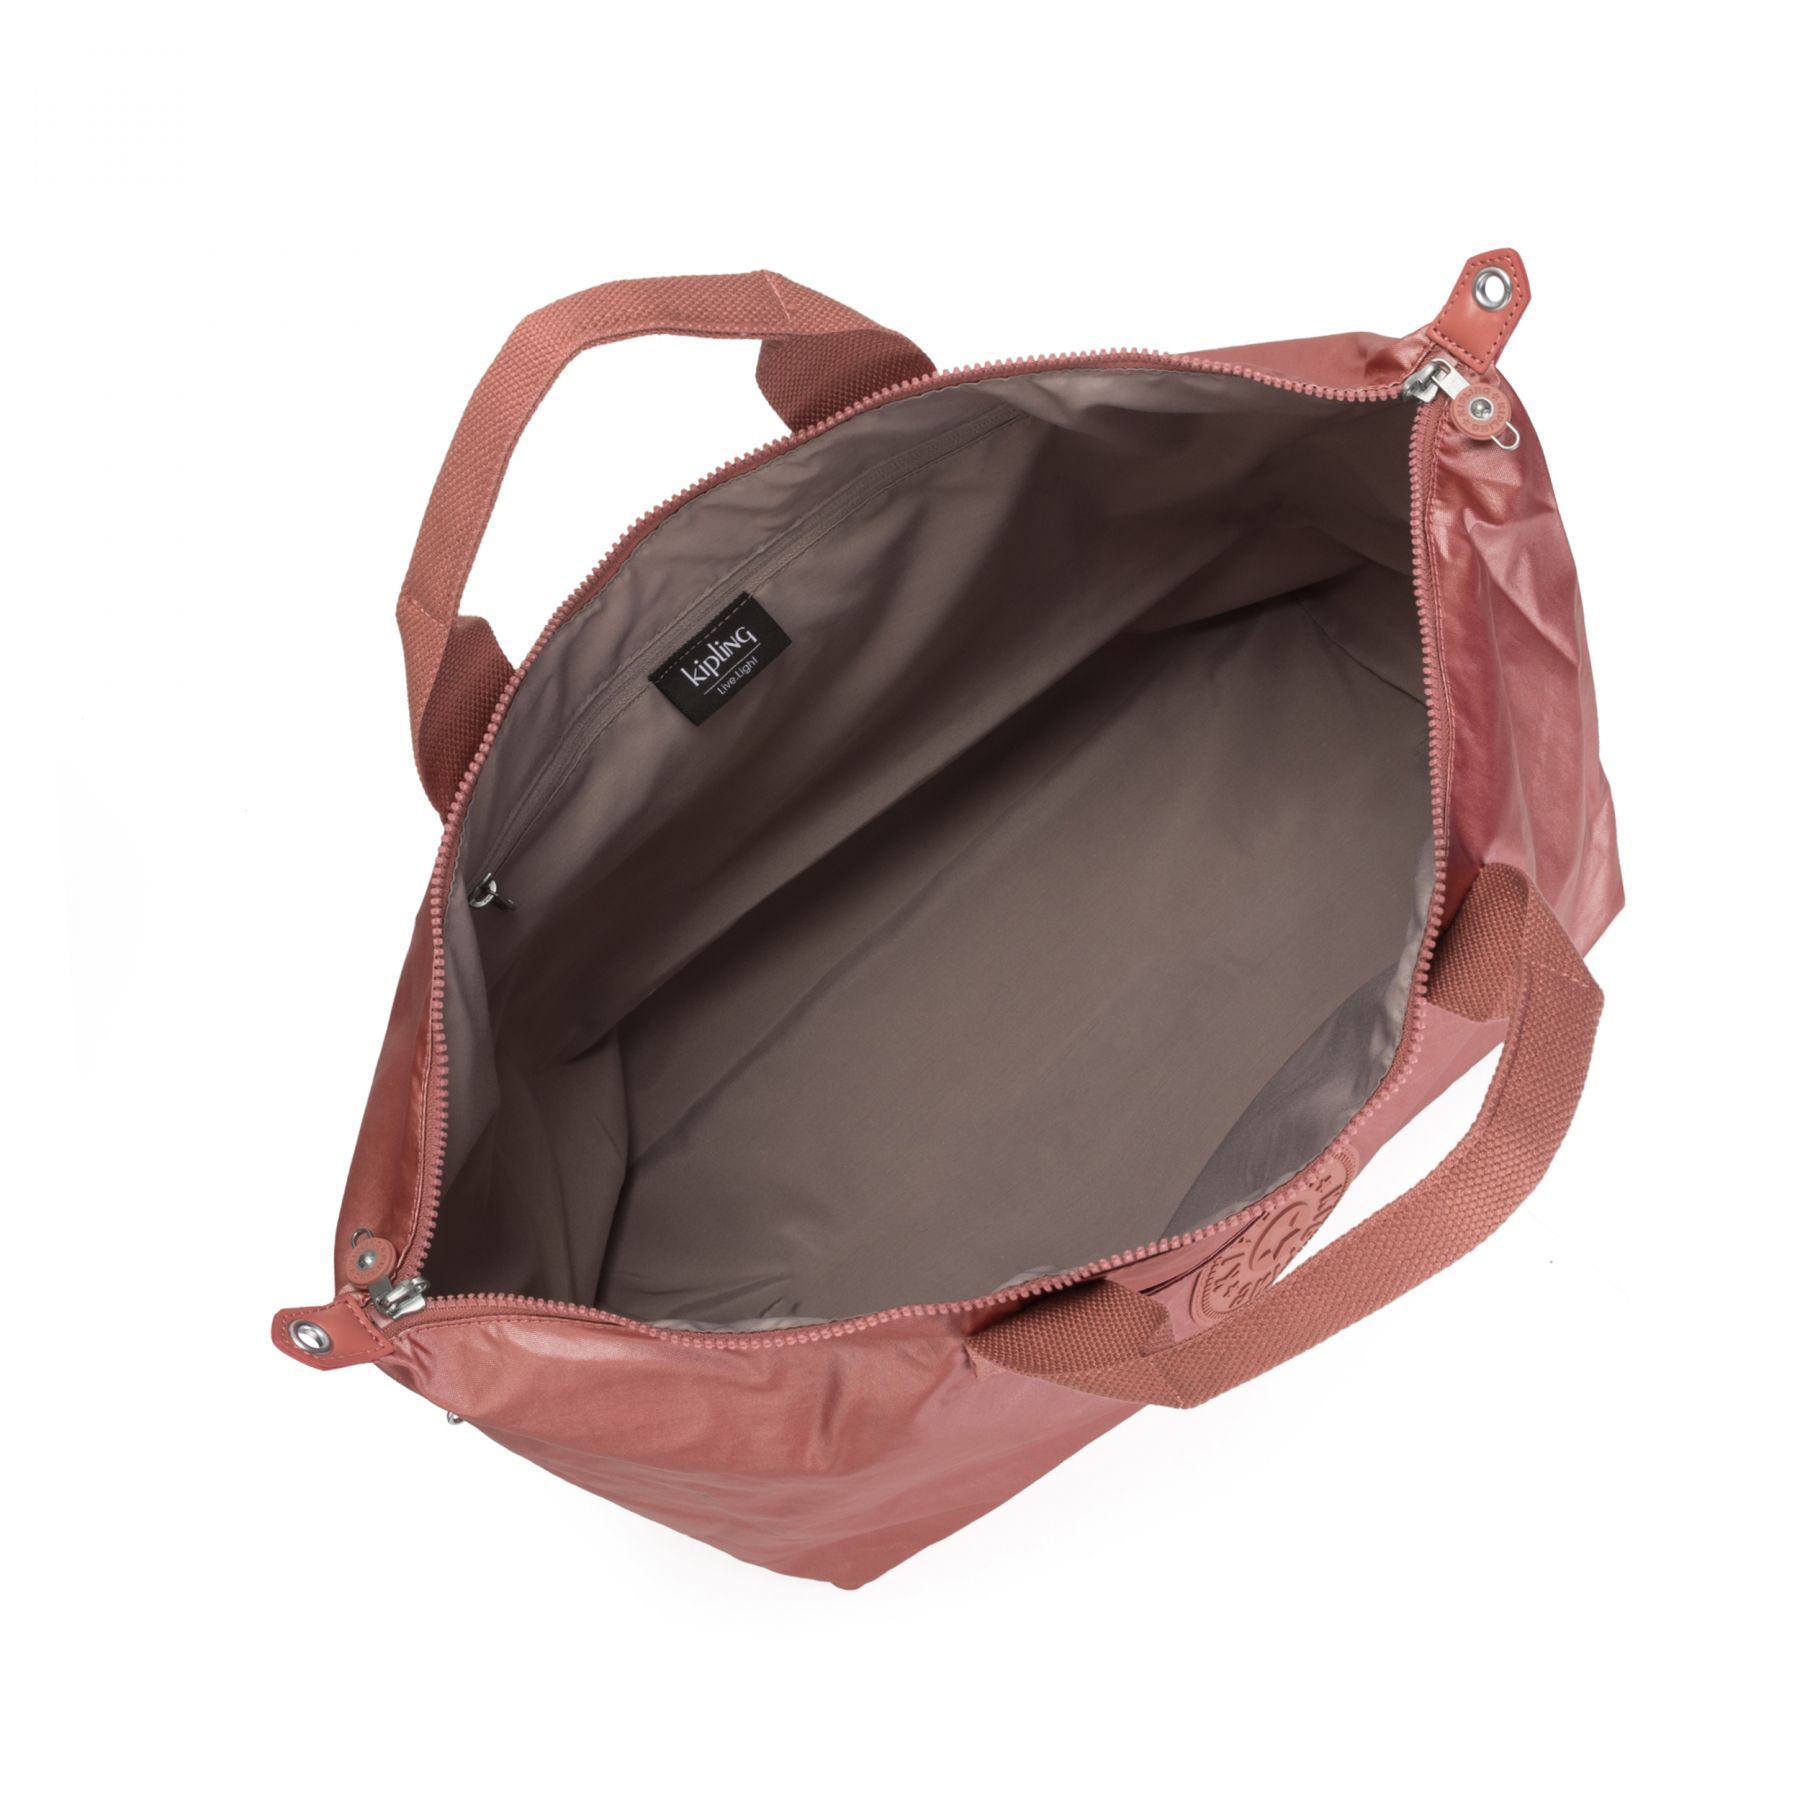 KALA M Shoulder Bags by Kipling - Inside view